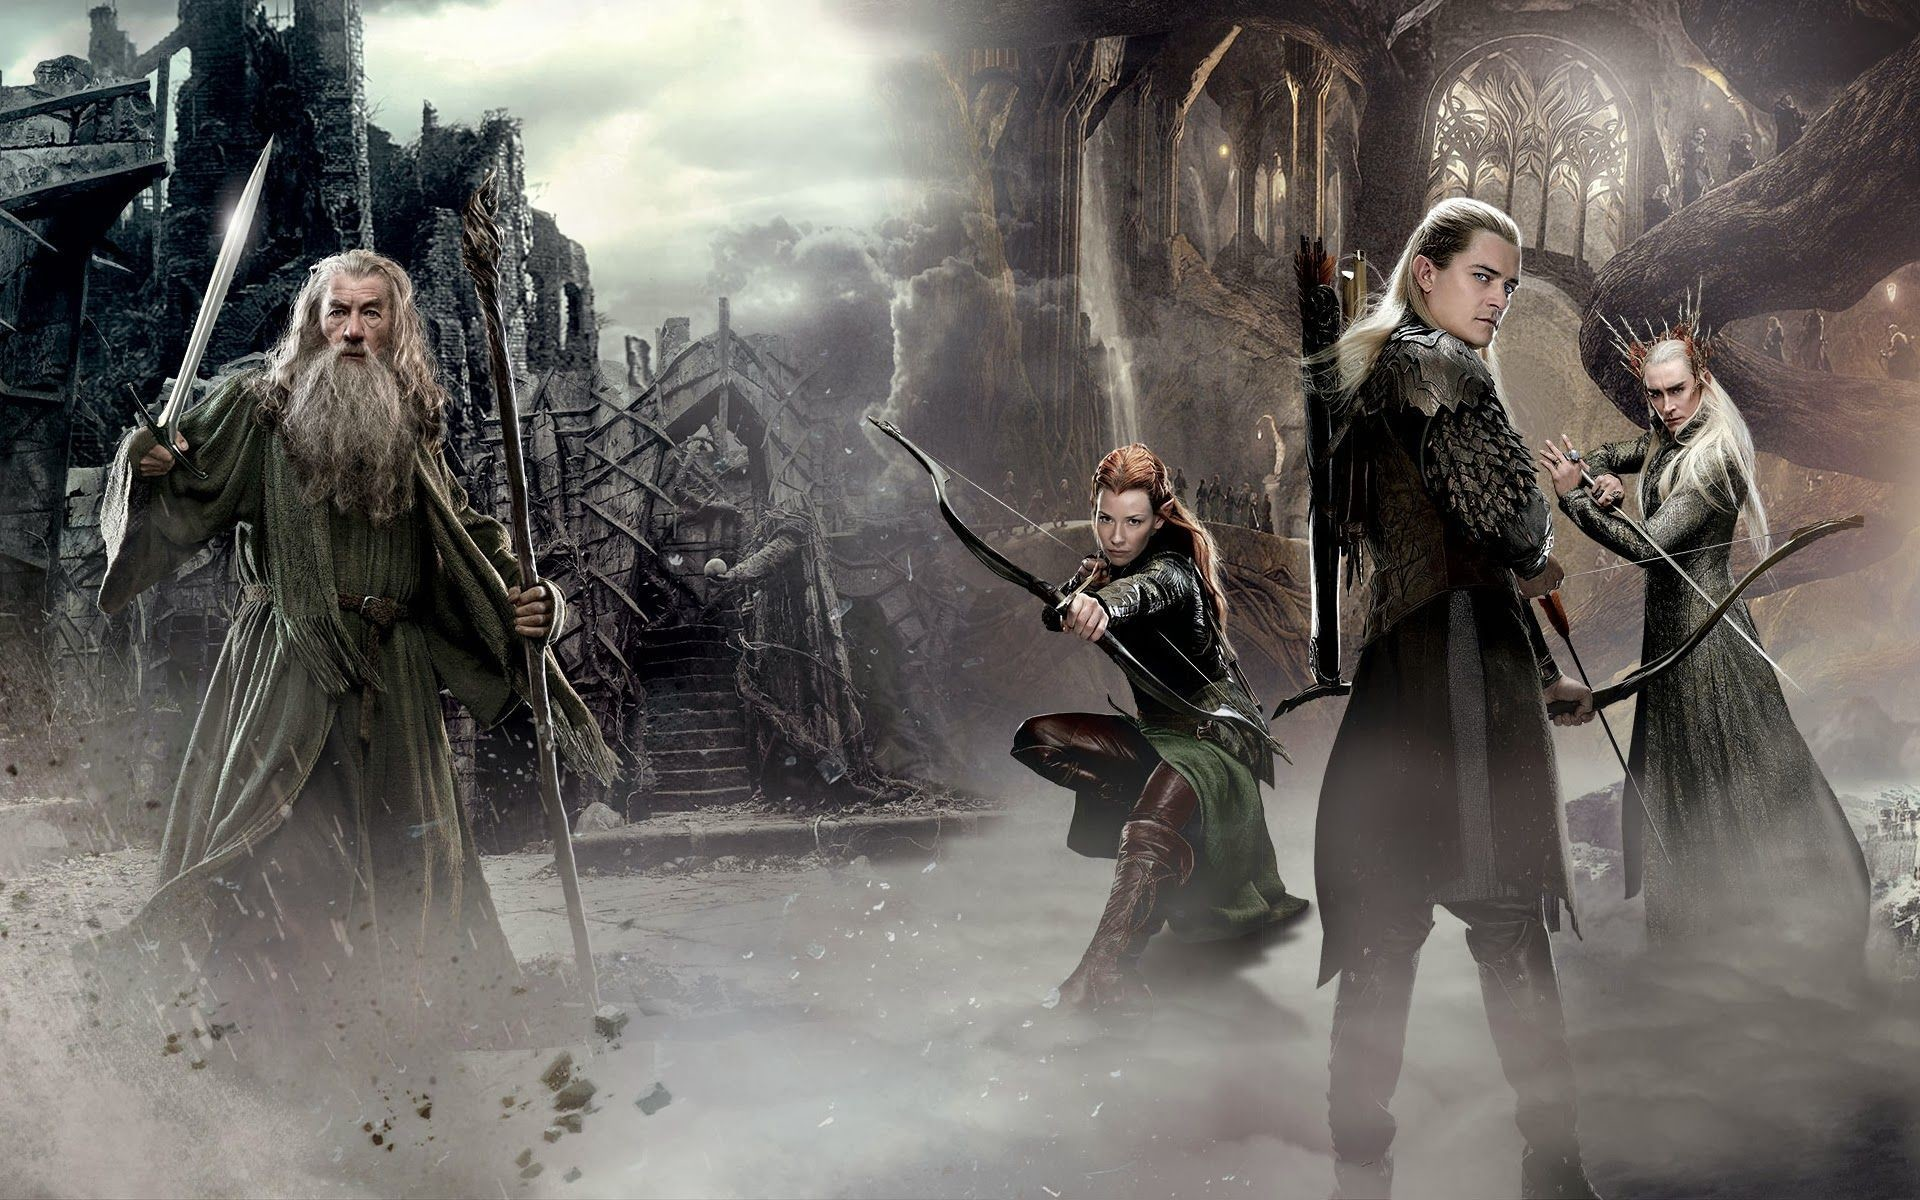 1920x1200 HQFX Images Collection of Legolas: Foma Inglesent